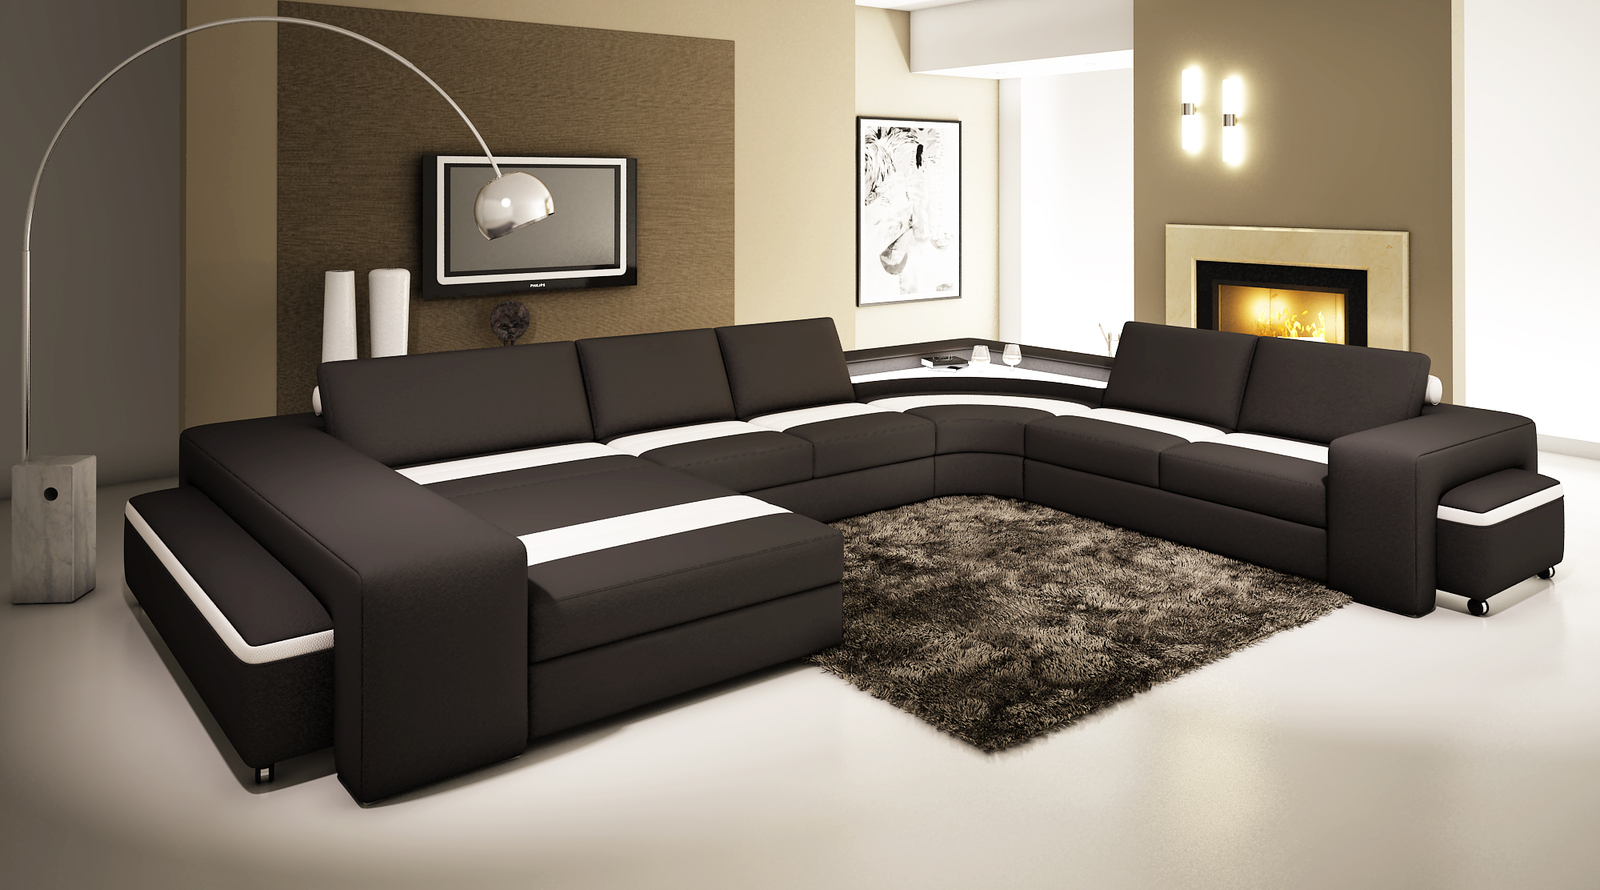 d corer son salon meuble et clairage led ruban. Black Bedroom Furniture Sets. Home Design Ideas